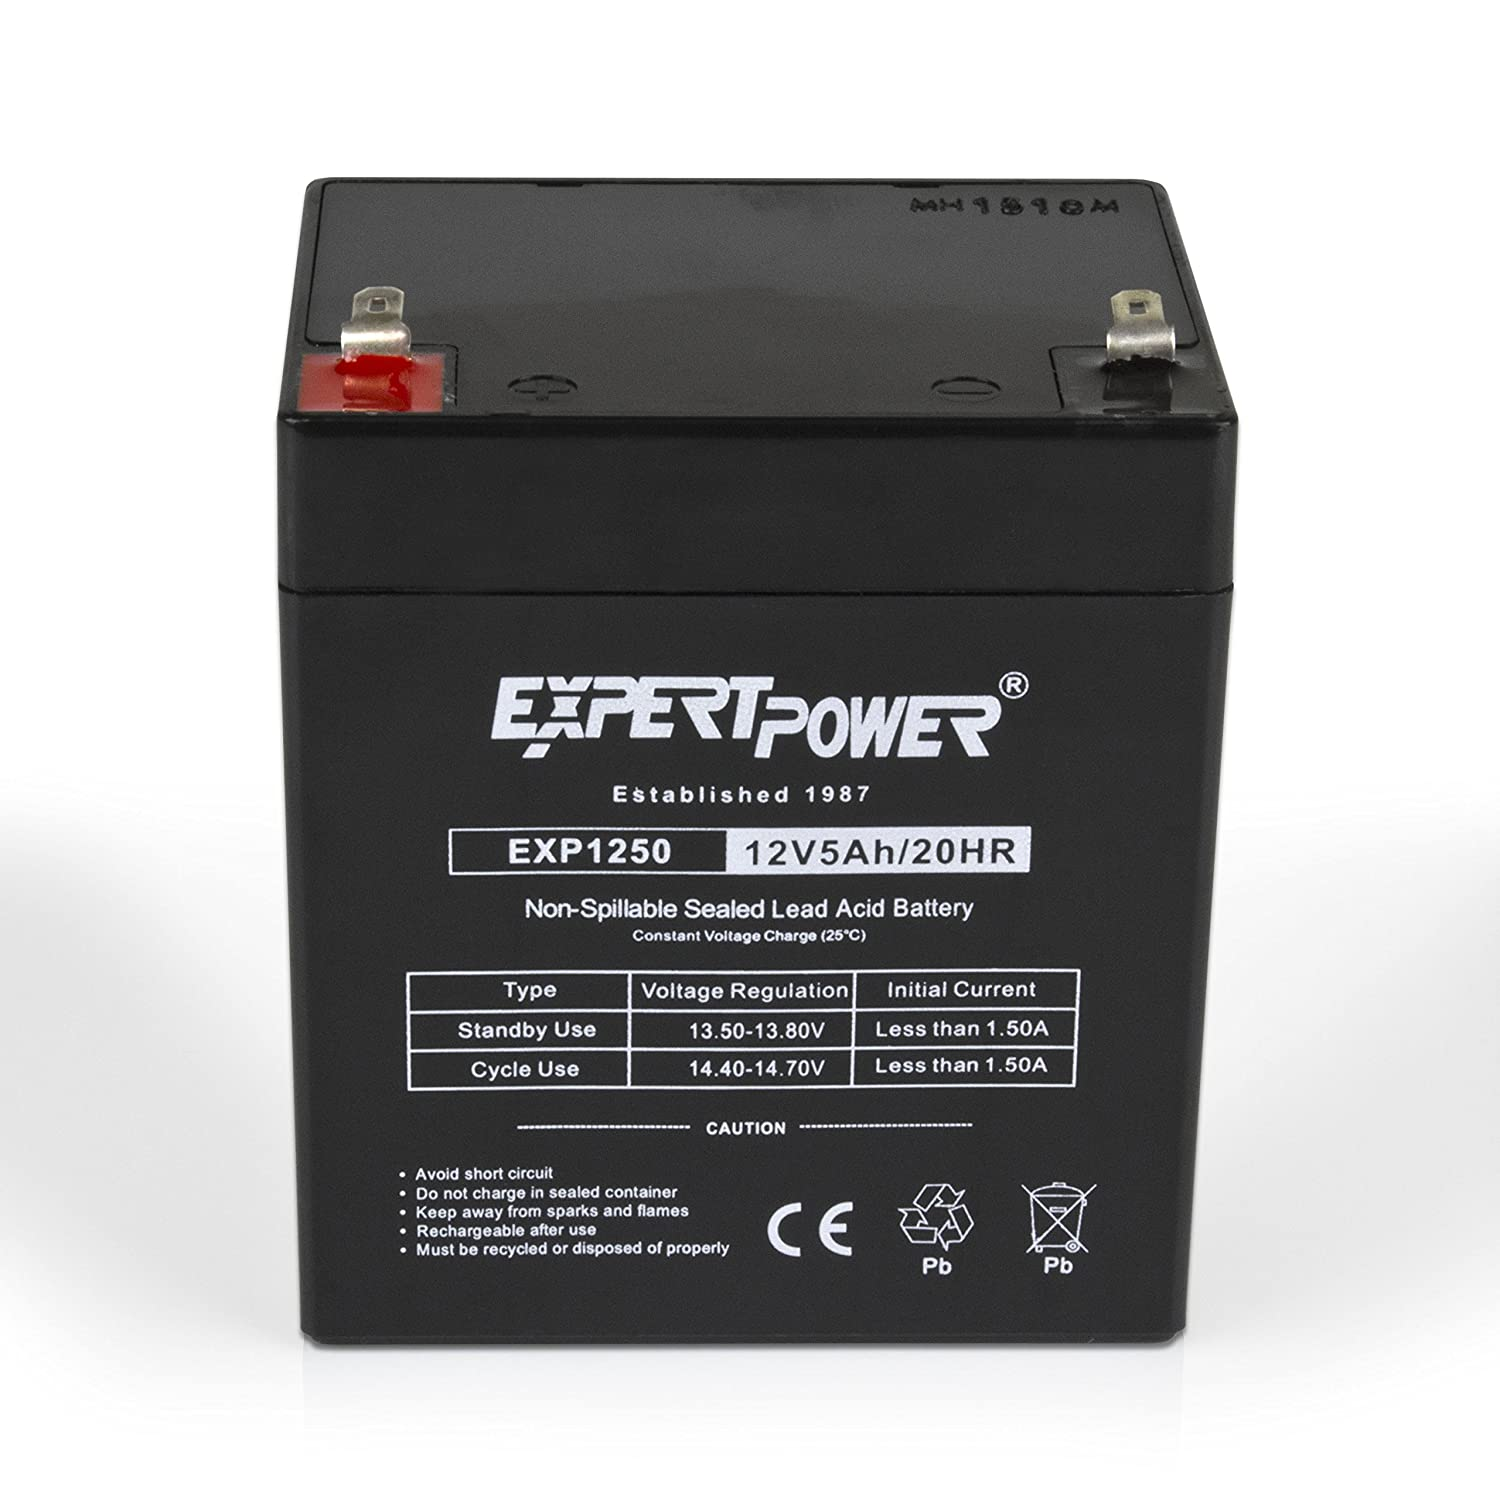 EXP1250 12V 5Ah Home Alarm Battery with F1 Terminals // Chamberlain / LiftMaster / Craftsman 4228 Replacement Battery for Battery Backup Equipped ...